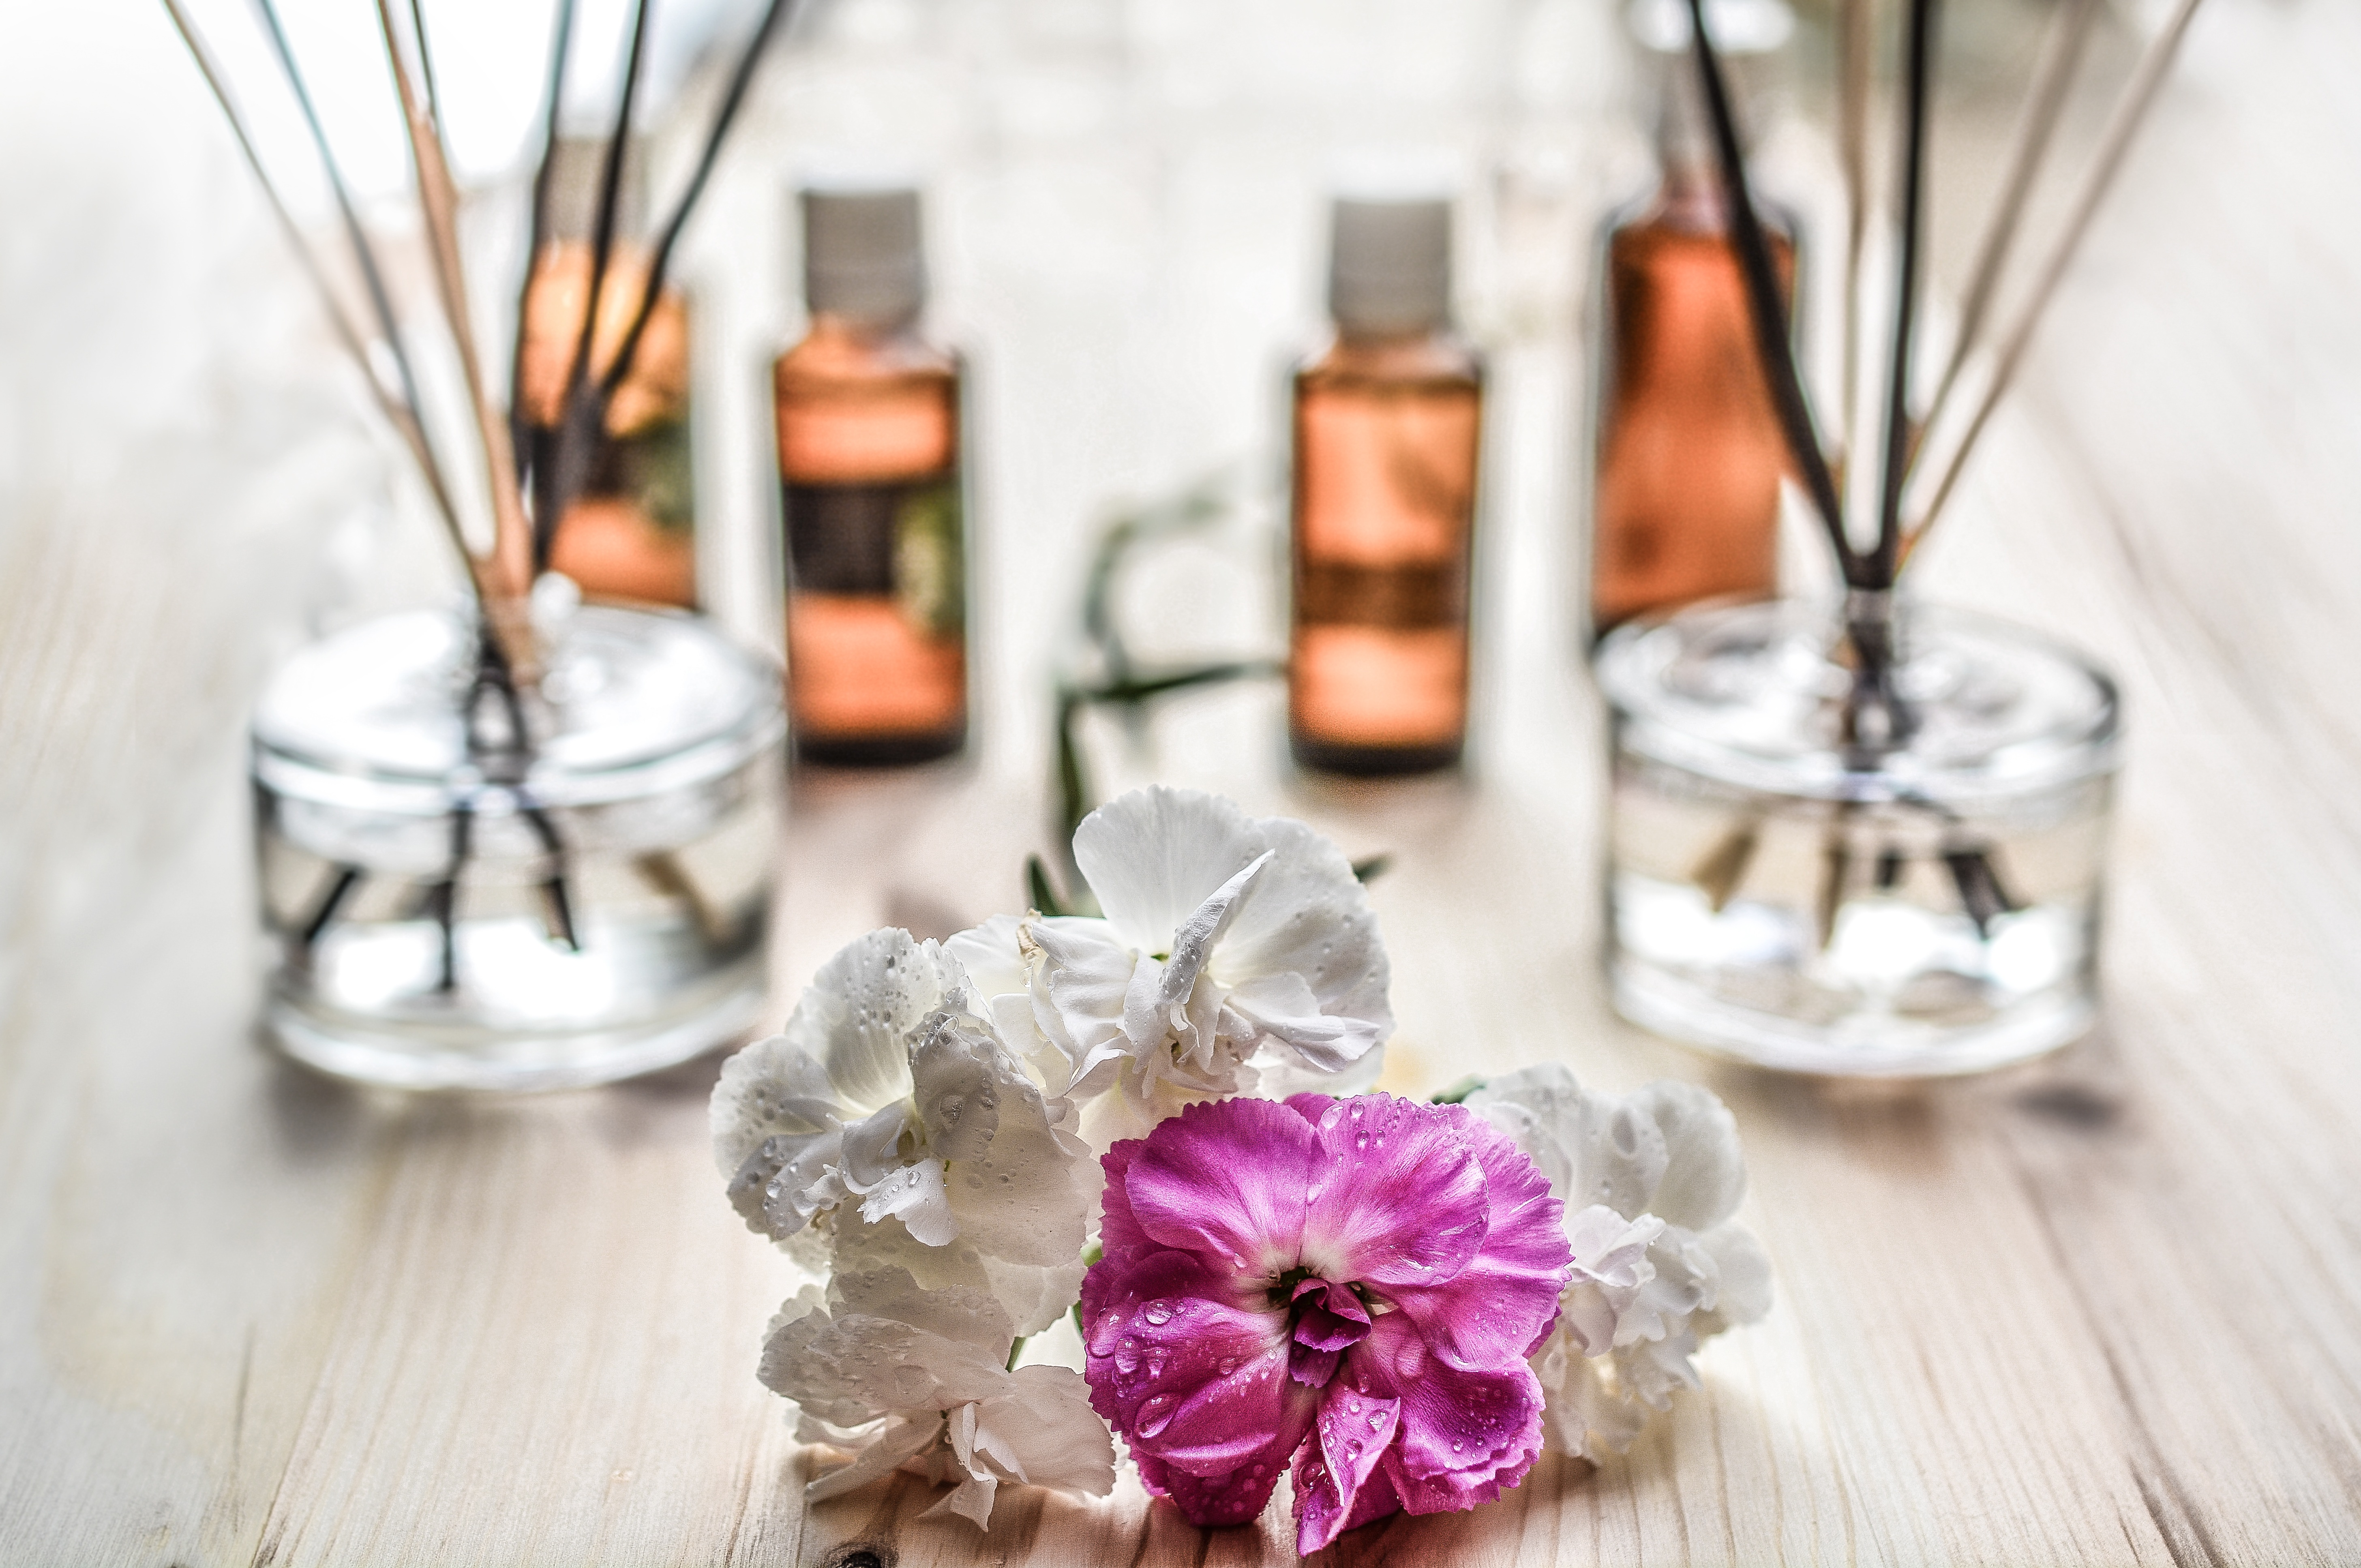 make your apartment smell good with natural scents